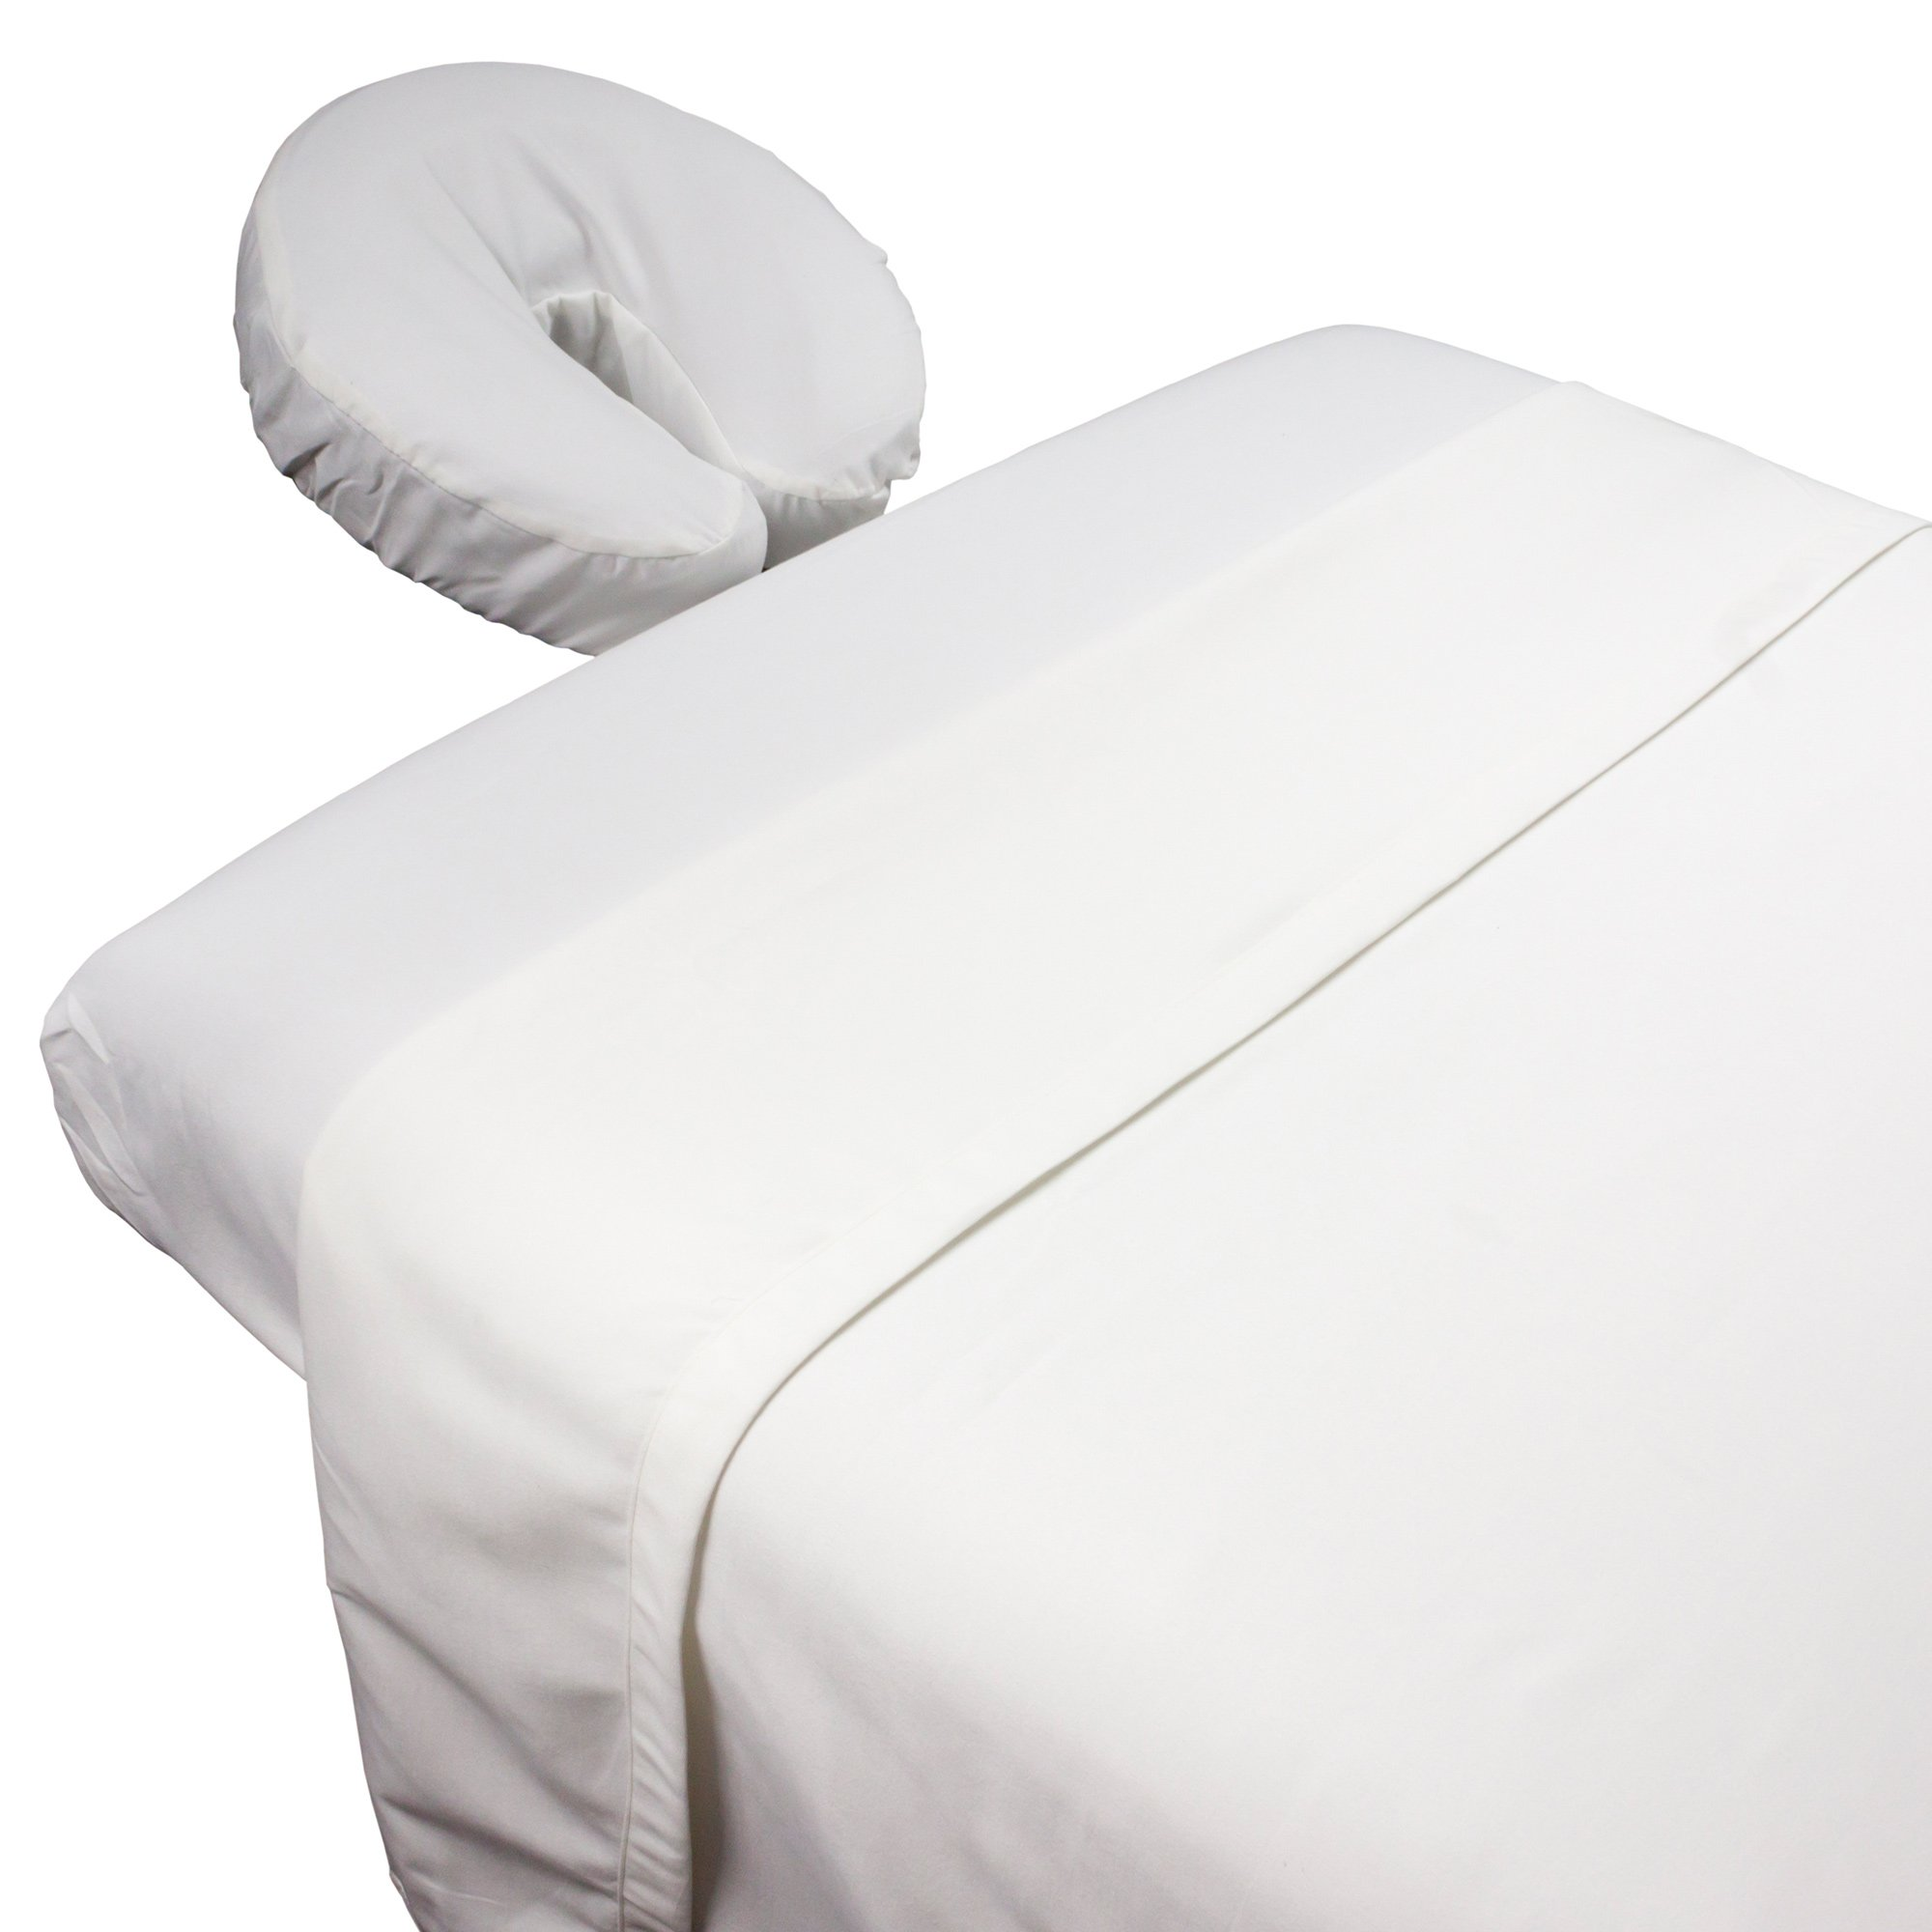 Tranquility Microfiber Massage Sheet Sets By Body Linen - Lightweight, Long-Lasting Microfiber Massage Table Sheet Set - Stain-Resistant, Soft and No Pilling {White}